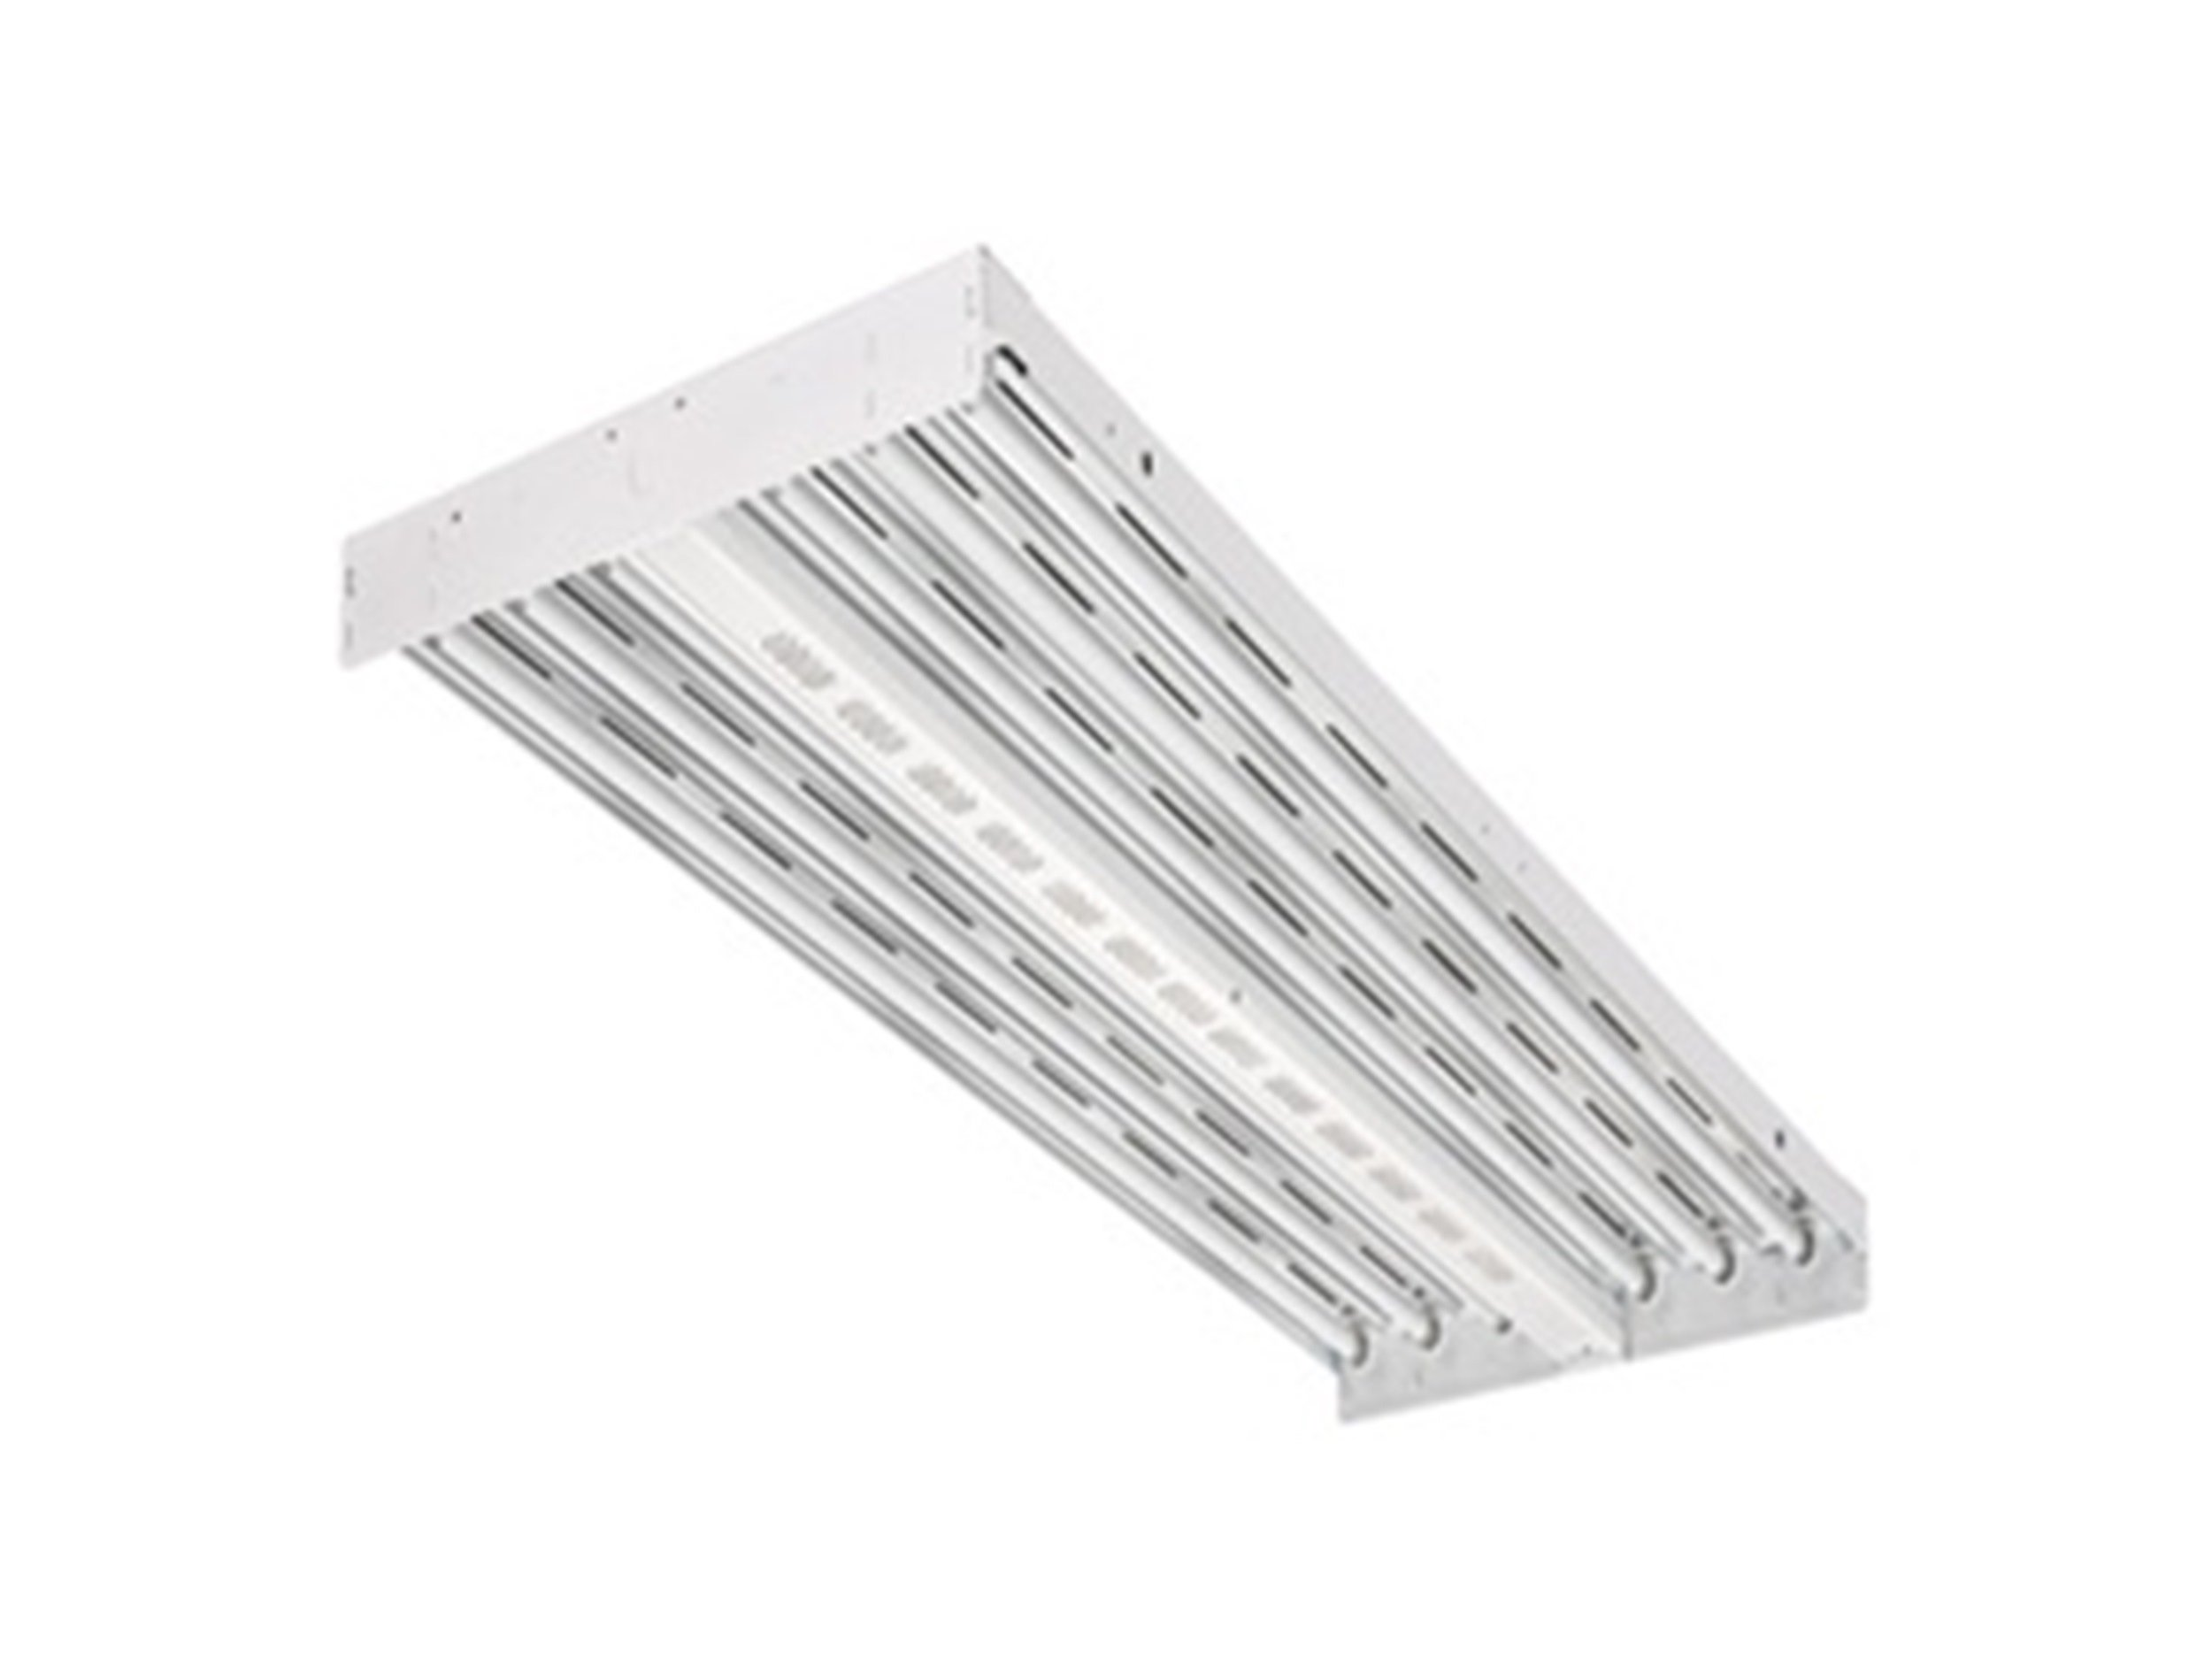 Lithonia Lighting IBZT5 6 Contractor Select 6-Light